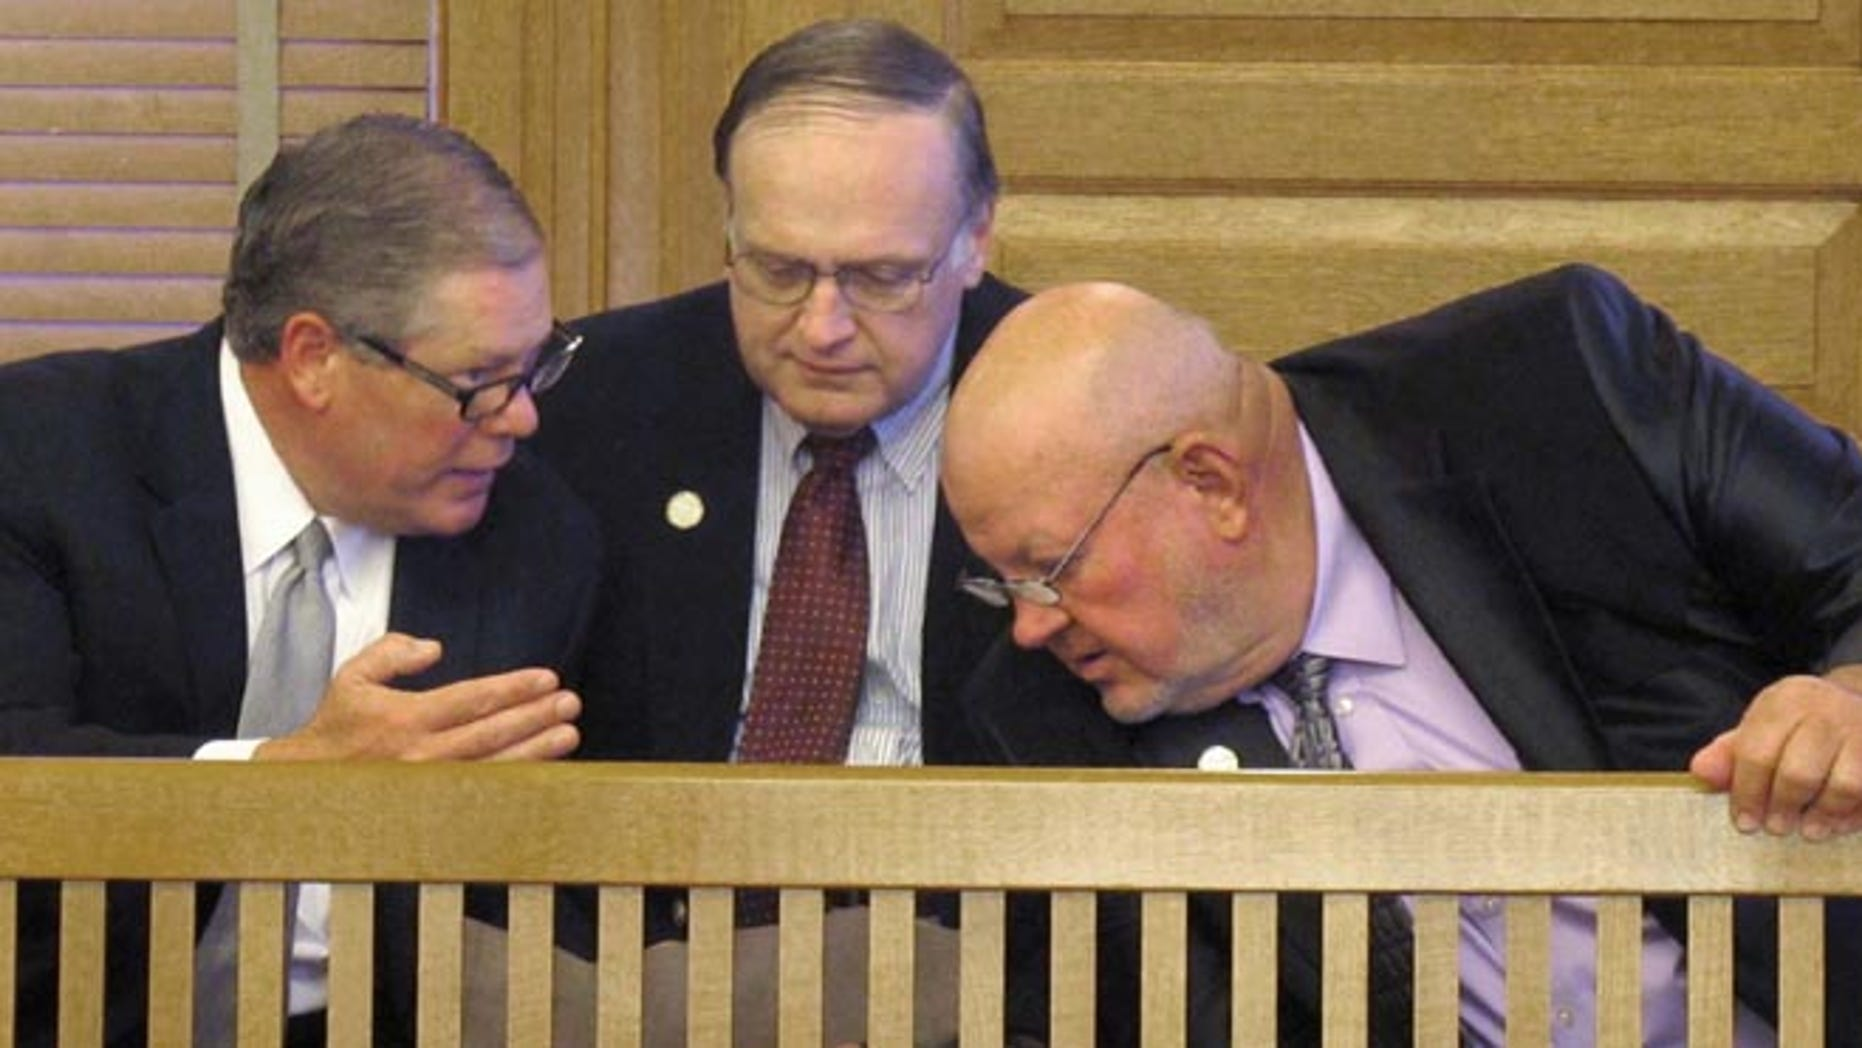 May 30, 2013: Jeff Freeman, left, a senior federal lobbyist for the National Rifle Association and former Kansas legislator, confers with Kansas state Reps. Ed Bideau, center, of Chanute, and Larry Hibbard, right, of Toronto, before a GOP caucus in the Statehouse in Topeka, Kan.